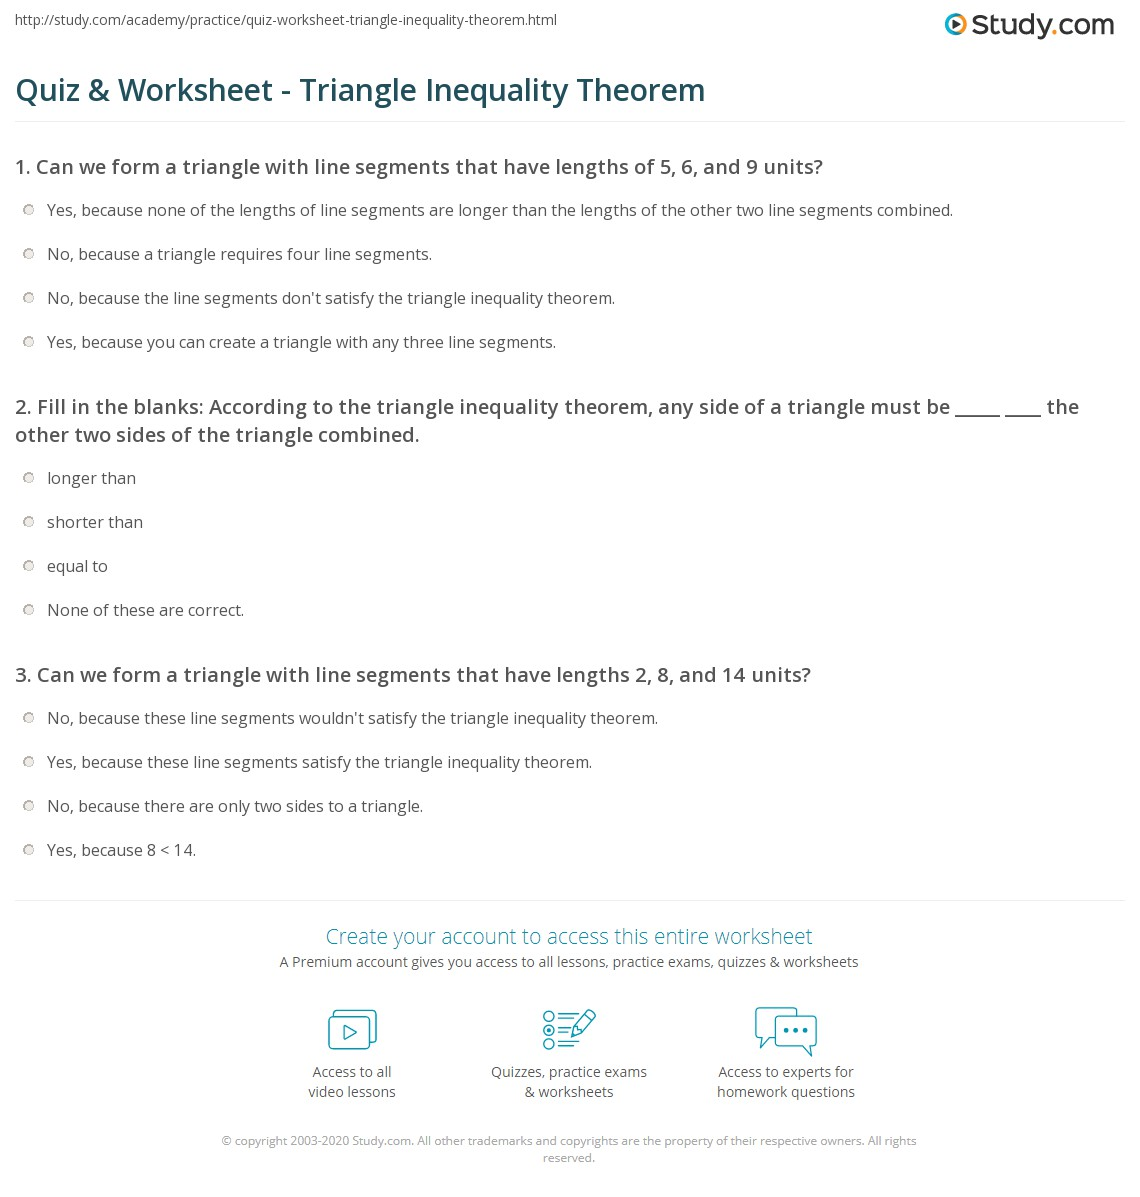 Quiz Worksheet Triangle Inequality Theorem Study Com